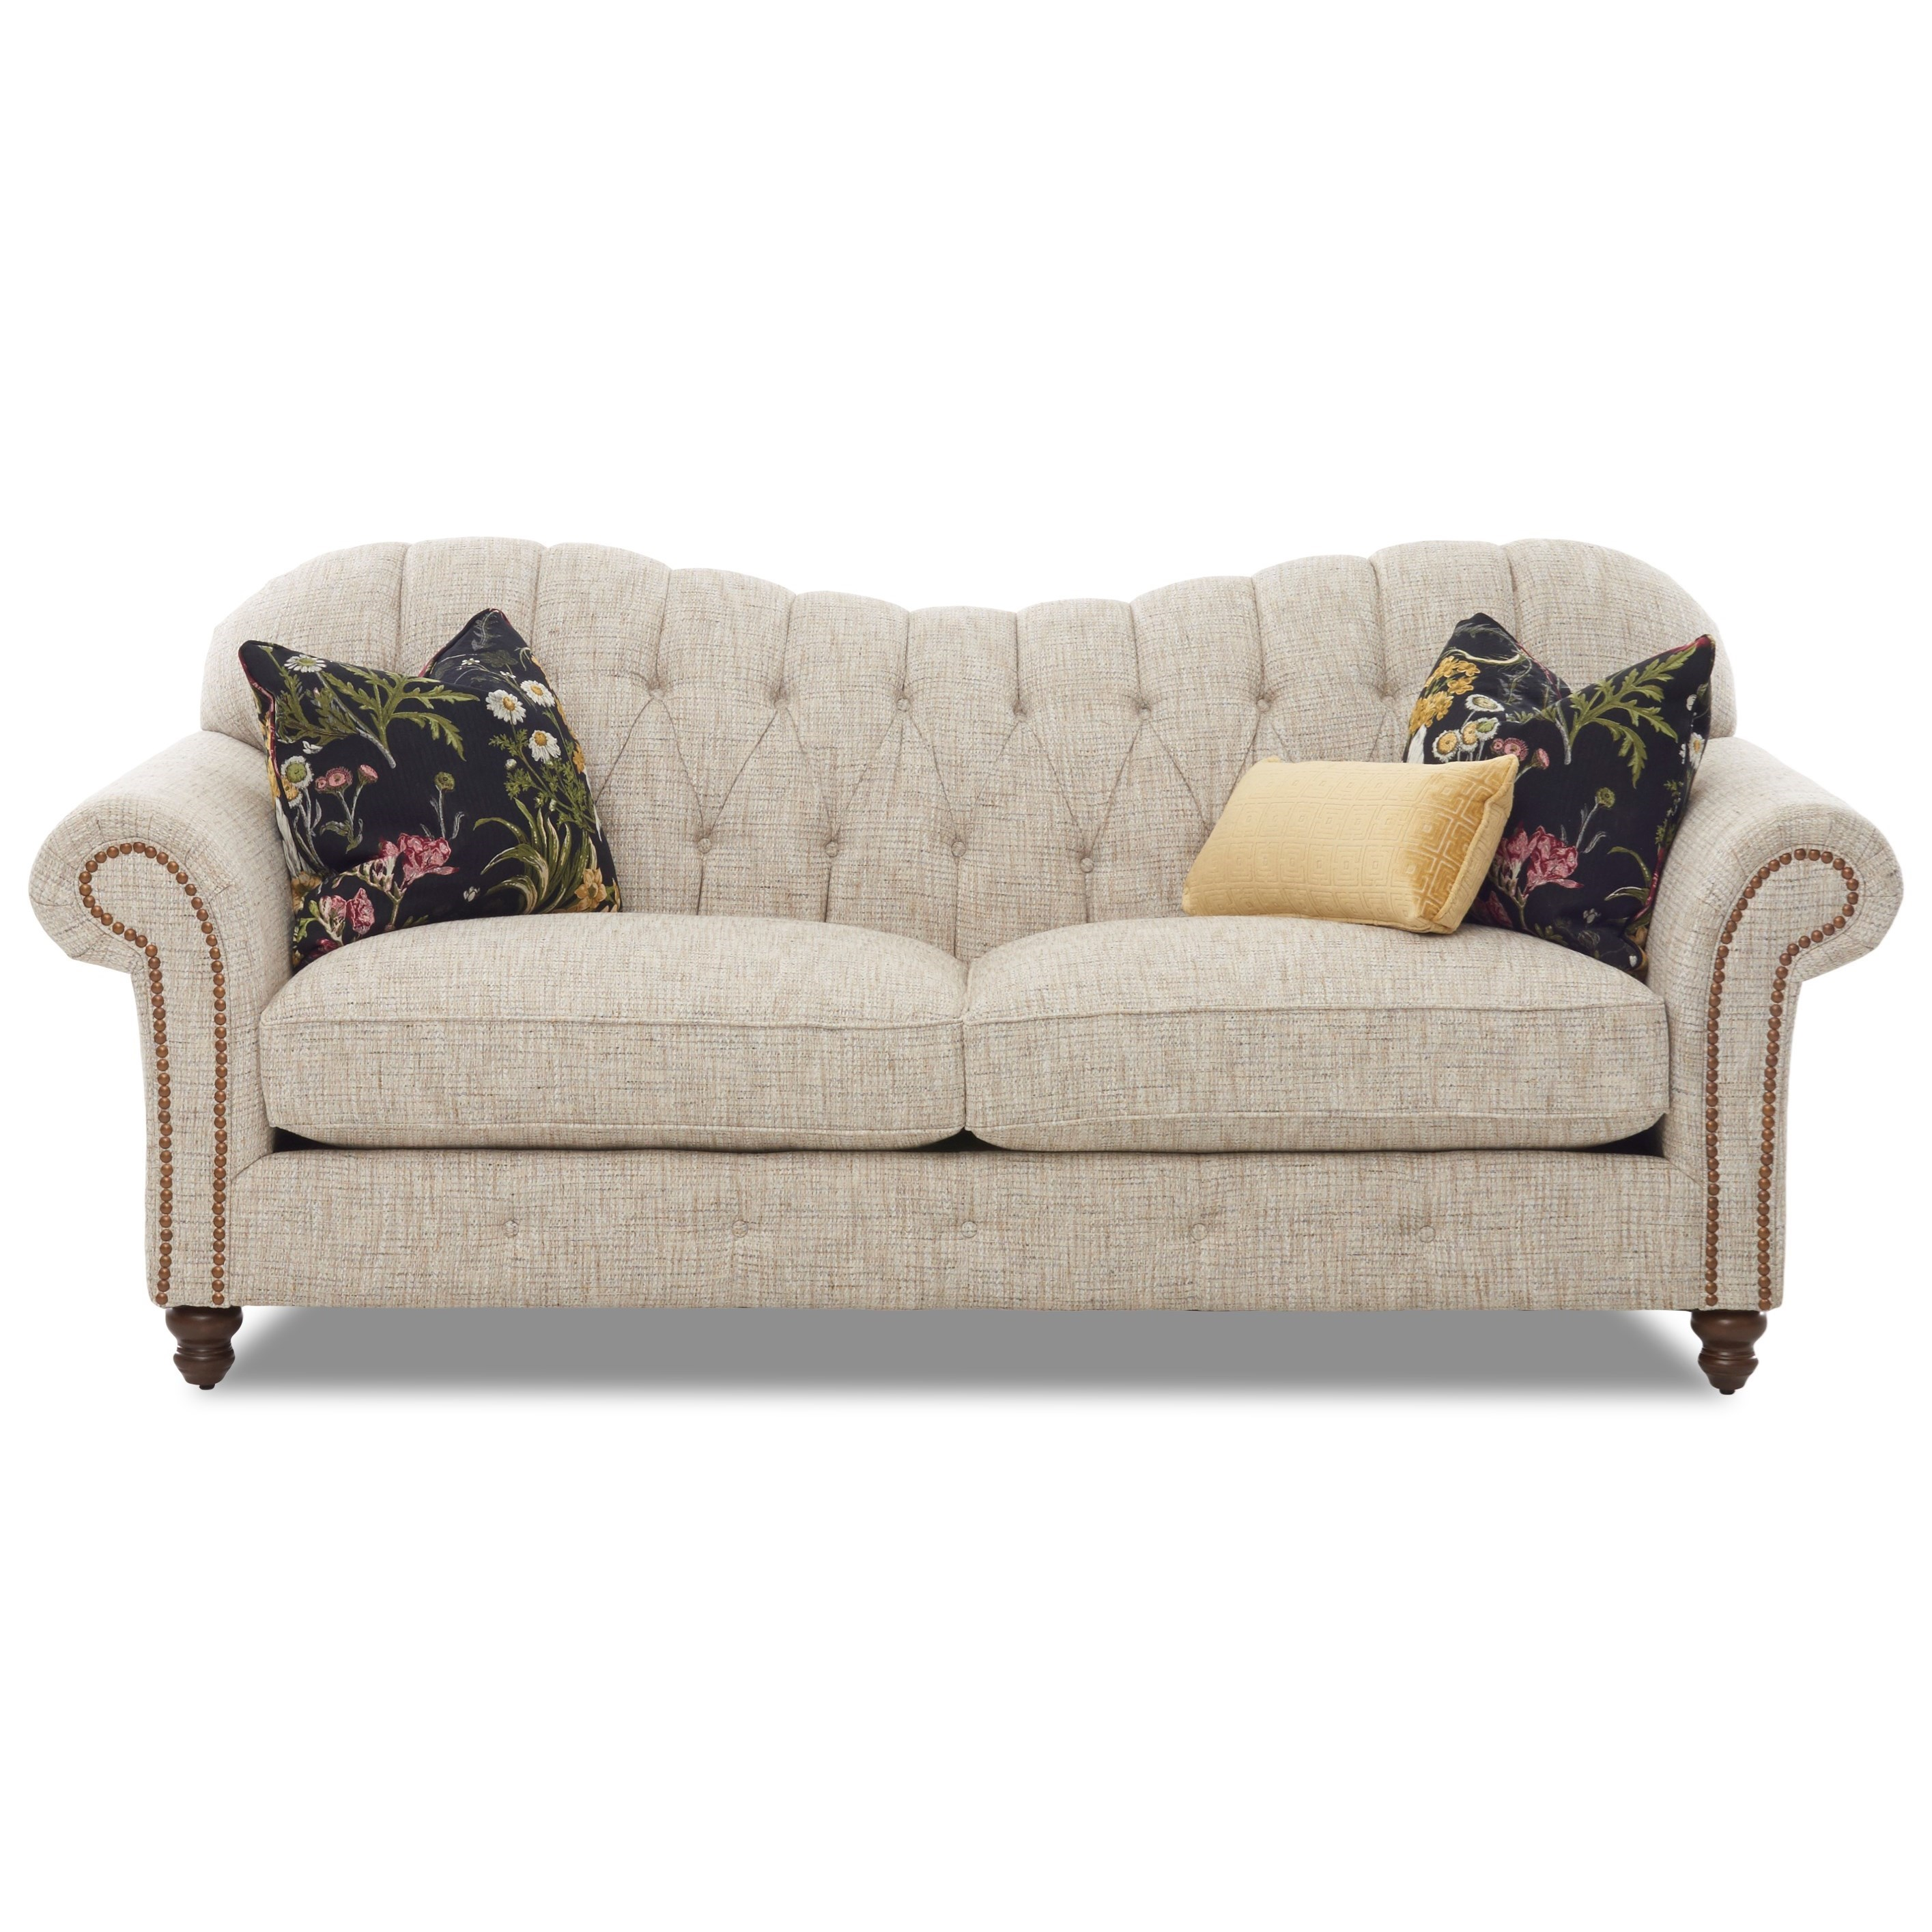 Shelby Sofa w/ Nailheads by Klaussner at Northeast Factory Direct